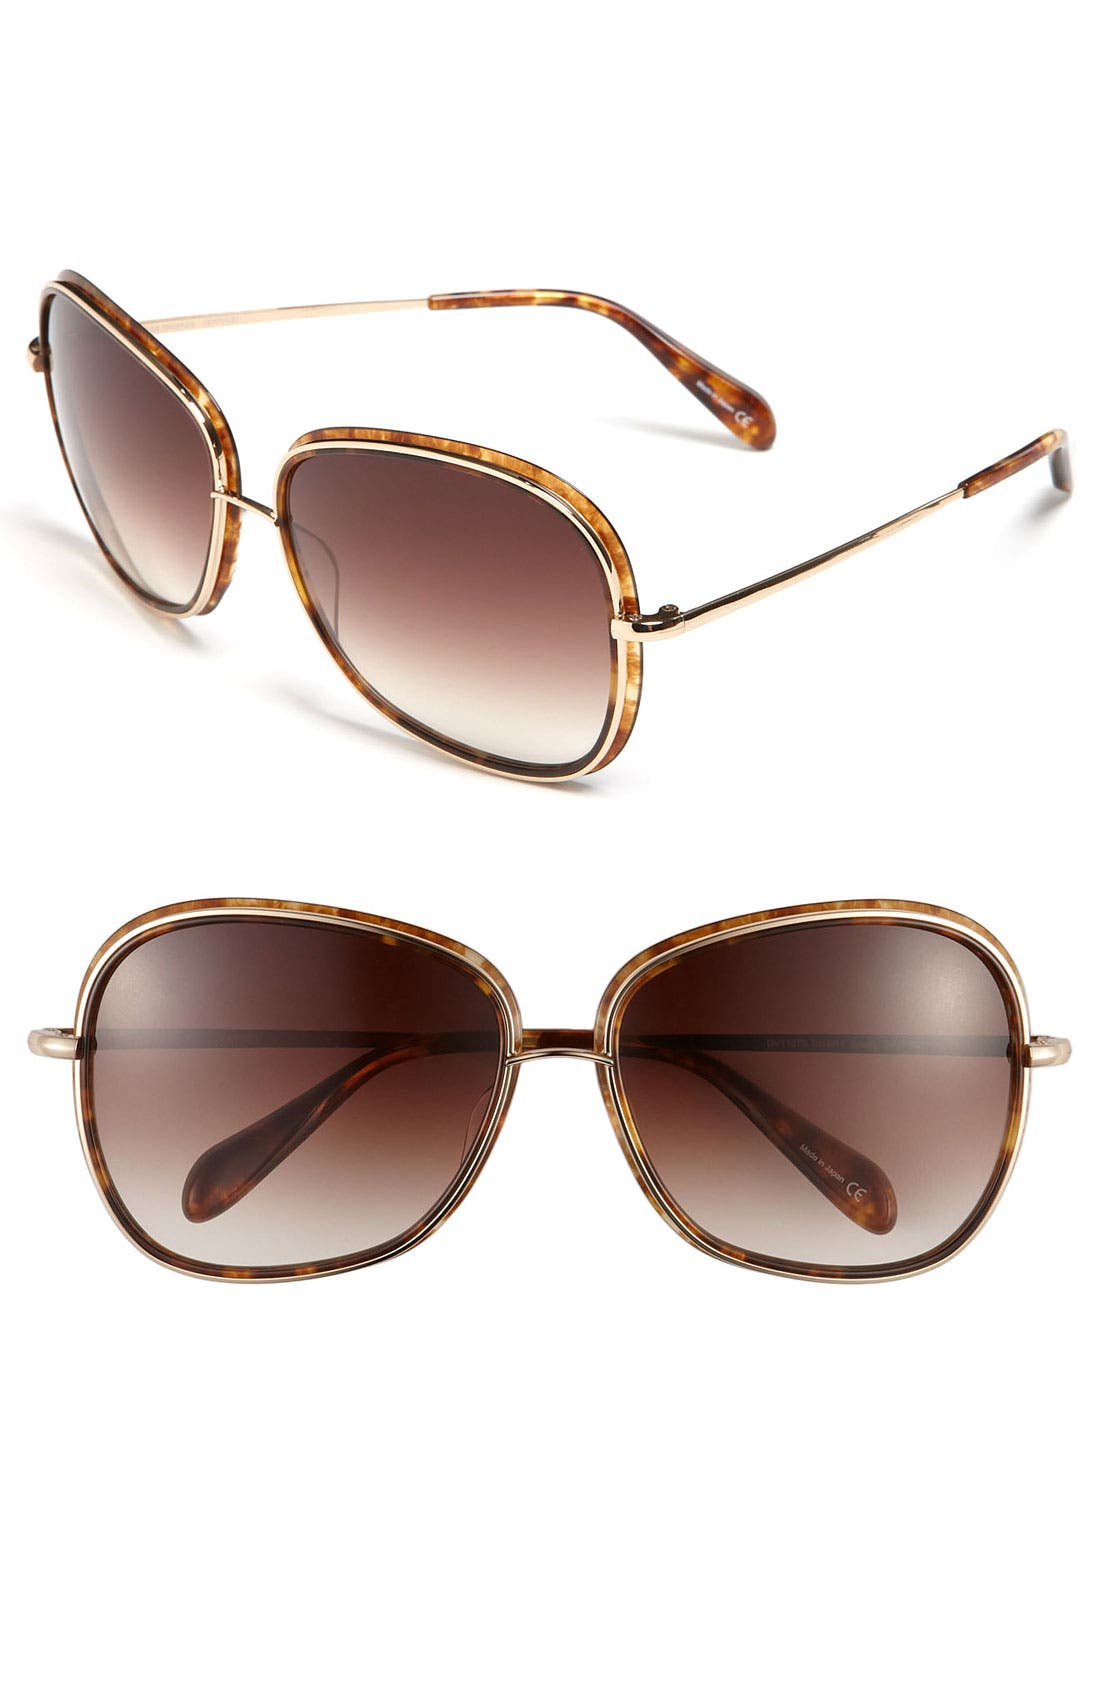 Main Image - Oliver Peoples 60mm Oversized Sunglasses